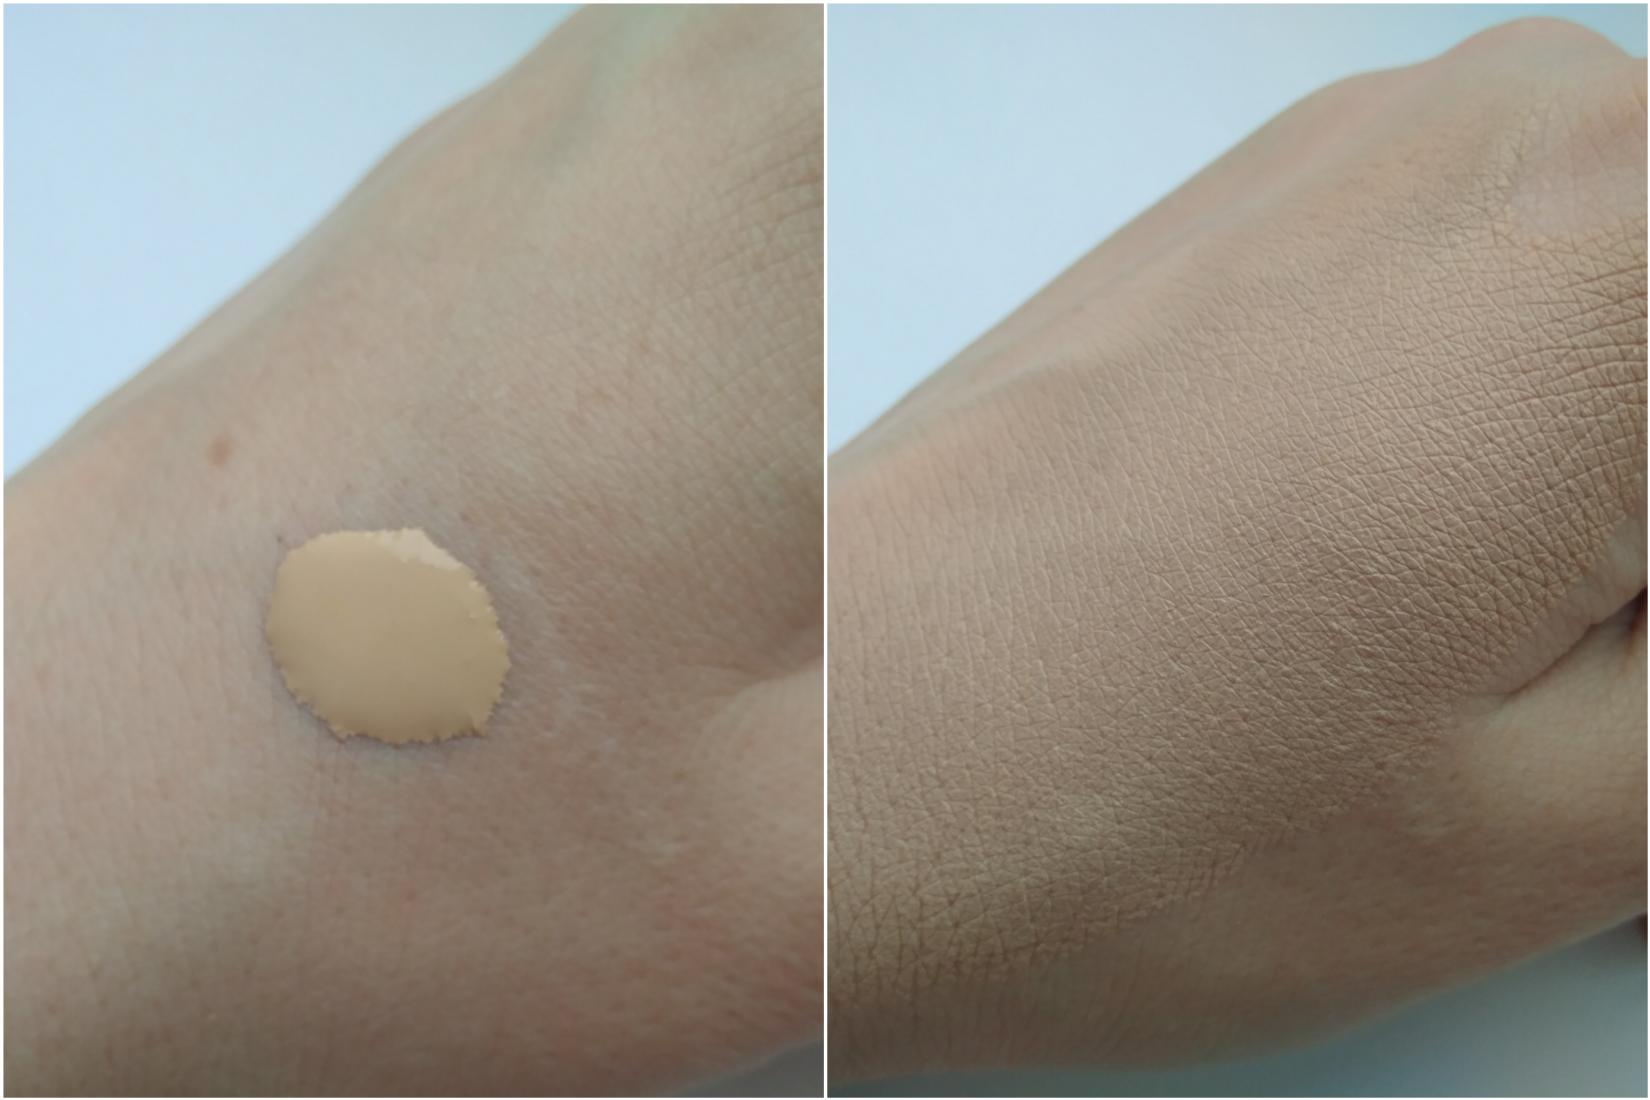 Тональная основа Catrice HD Liquid Coverage Foundation 010 Light Beige - текстура, свотч на руке